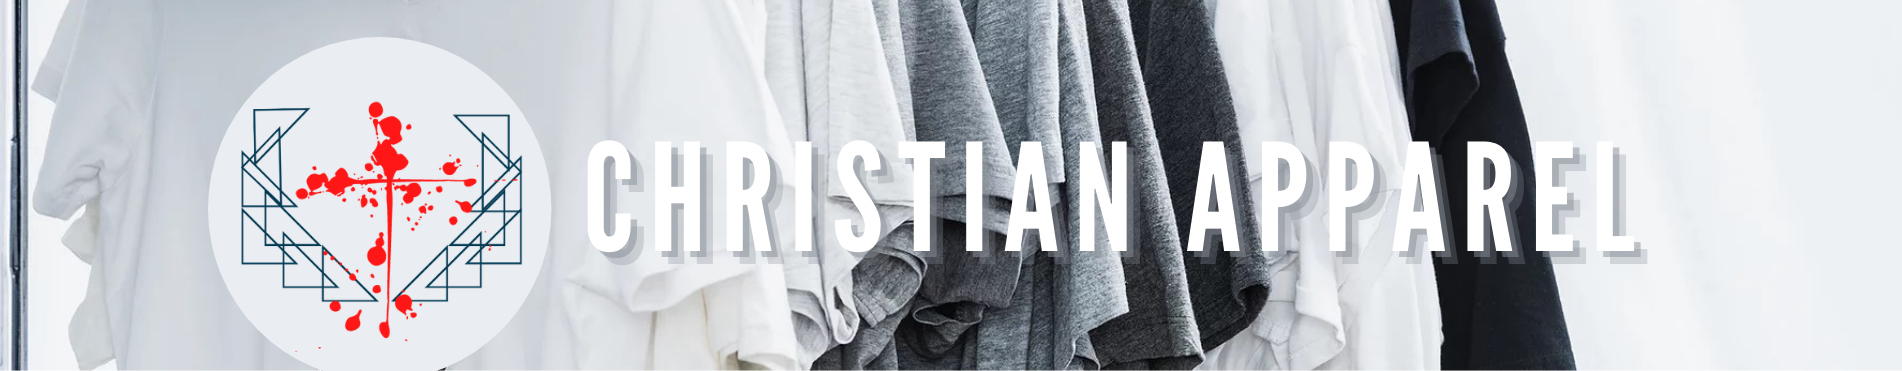 Christian apparel_1902x371px.png